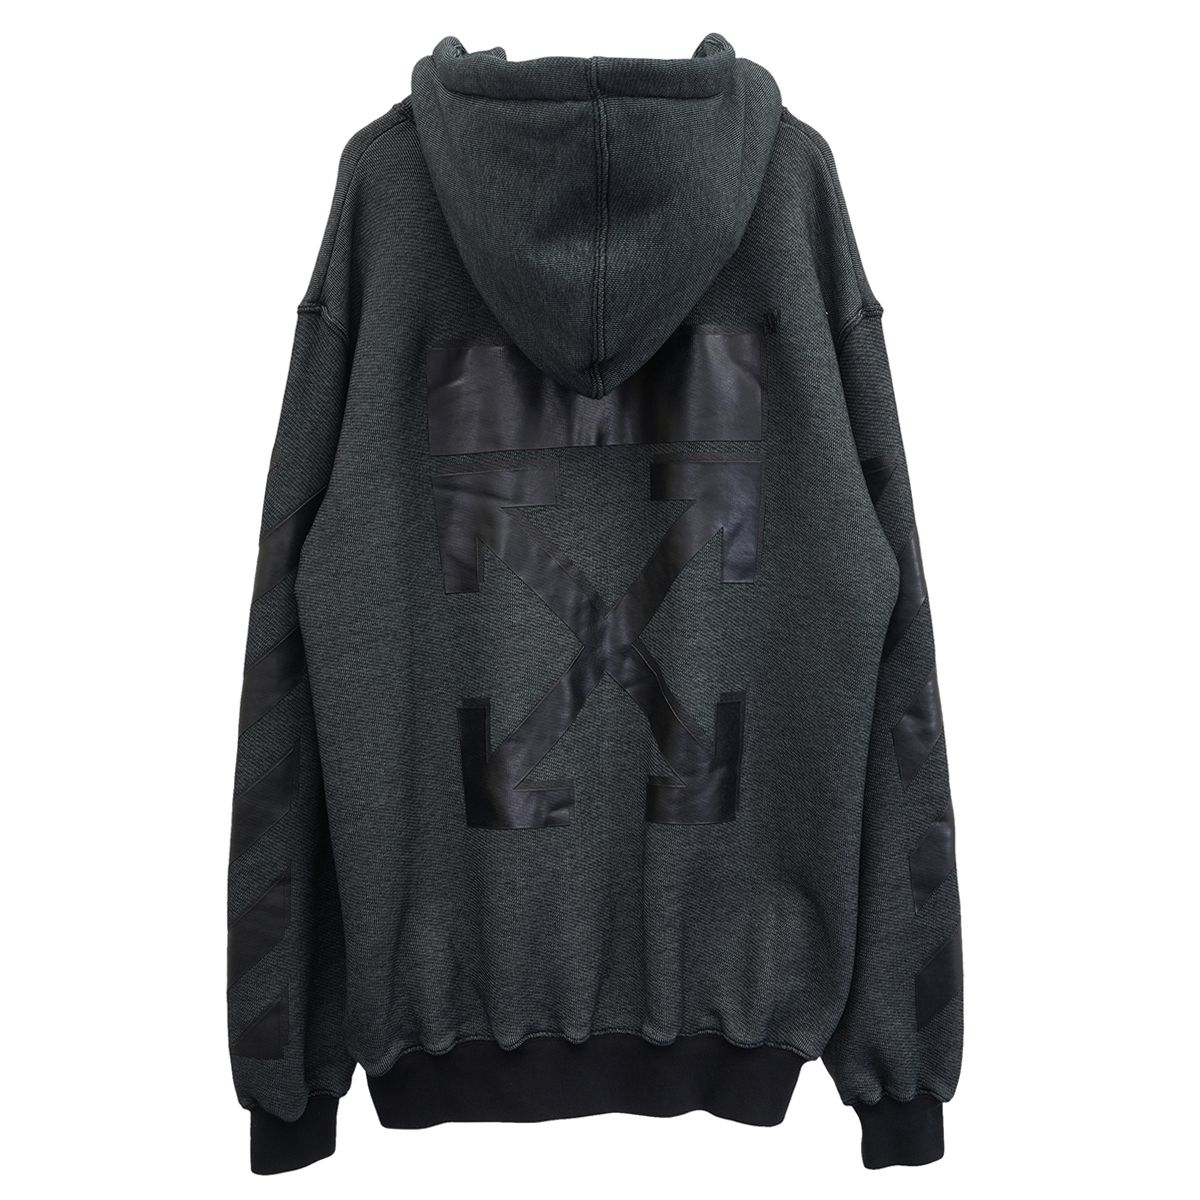 OFF-WHITE c/o Virgil Abloh WOMENS ARROW ZIPPED HOODIE / 1010 : BLACK BLACK